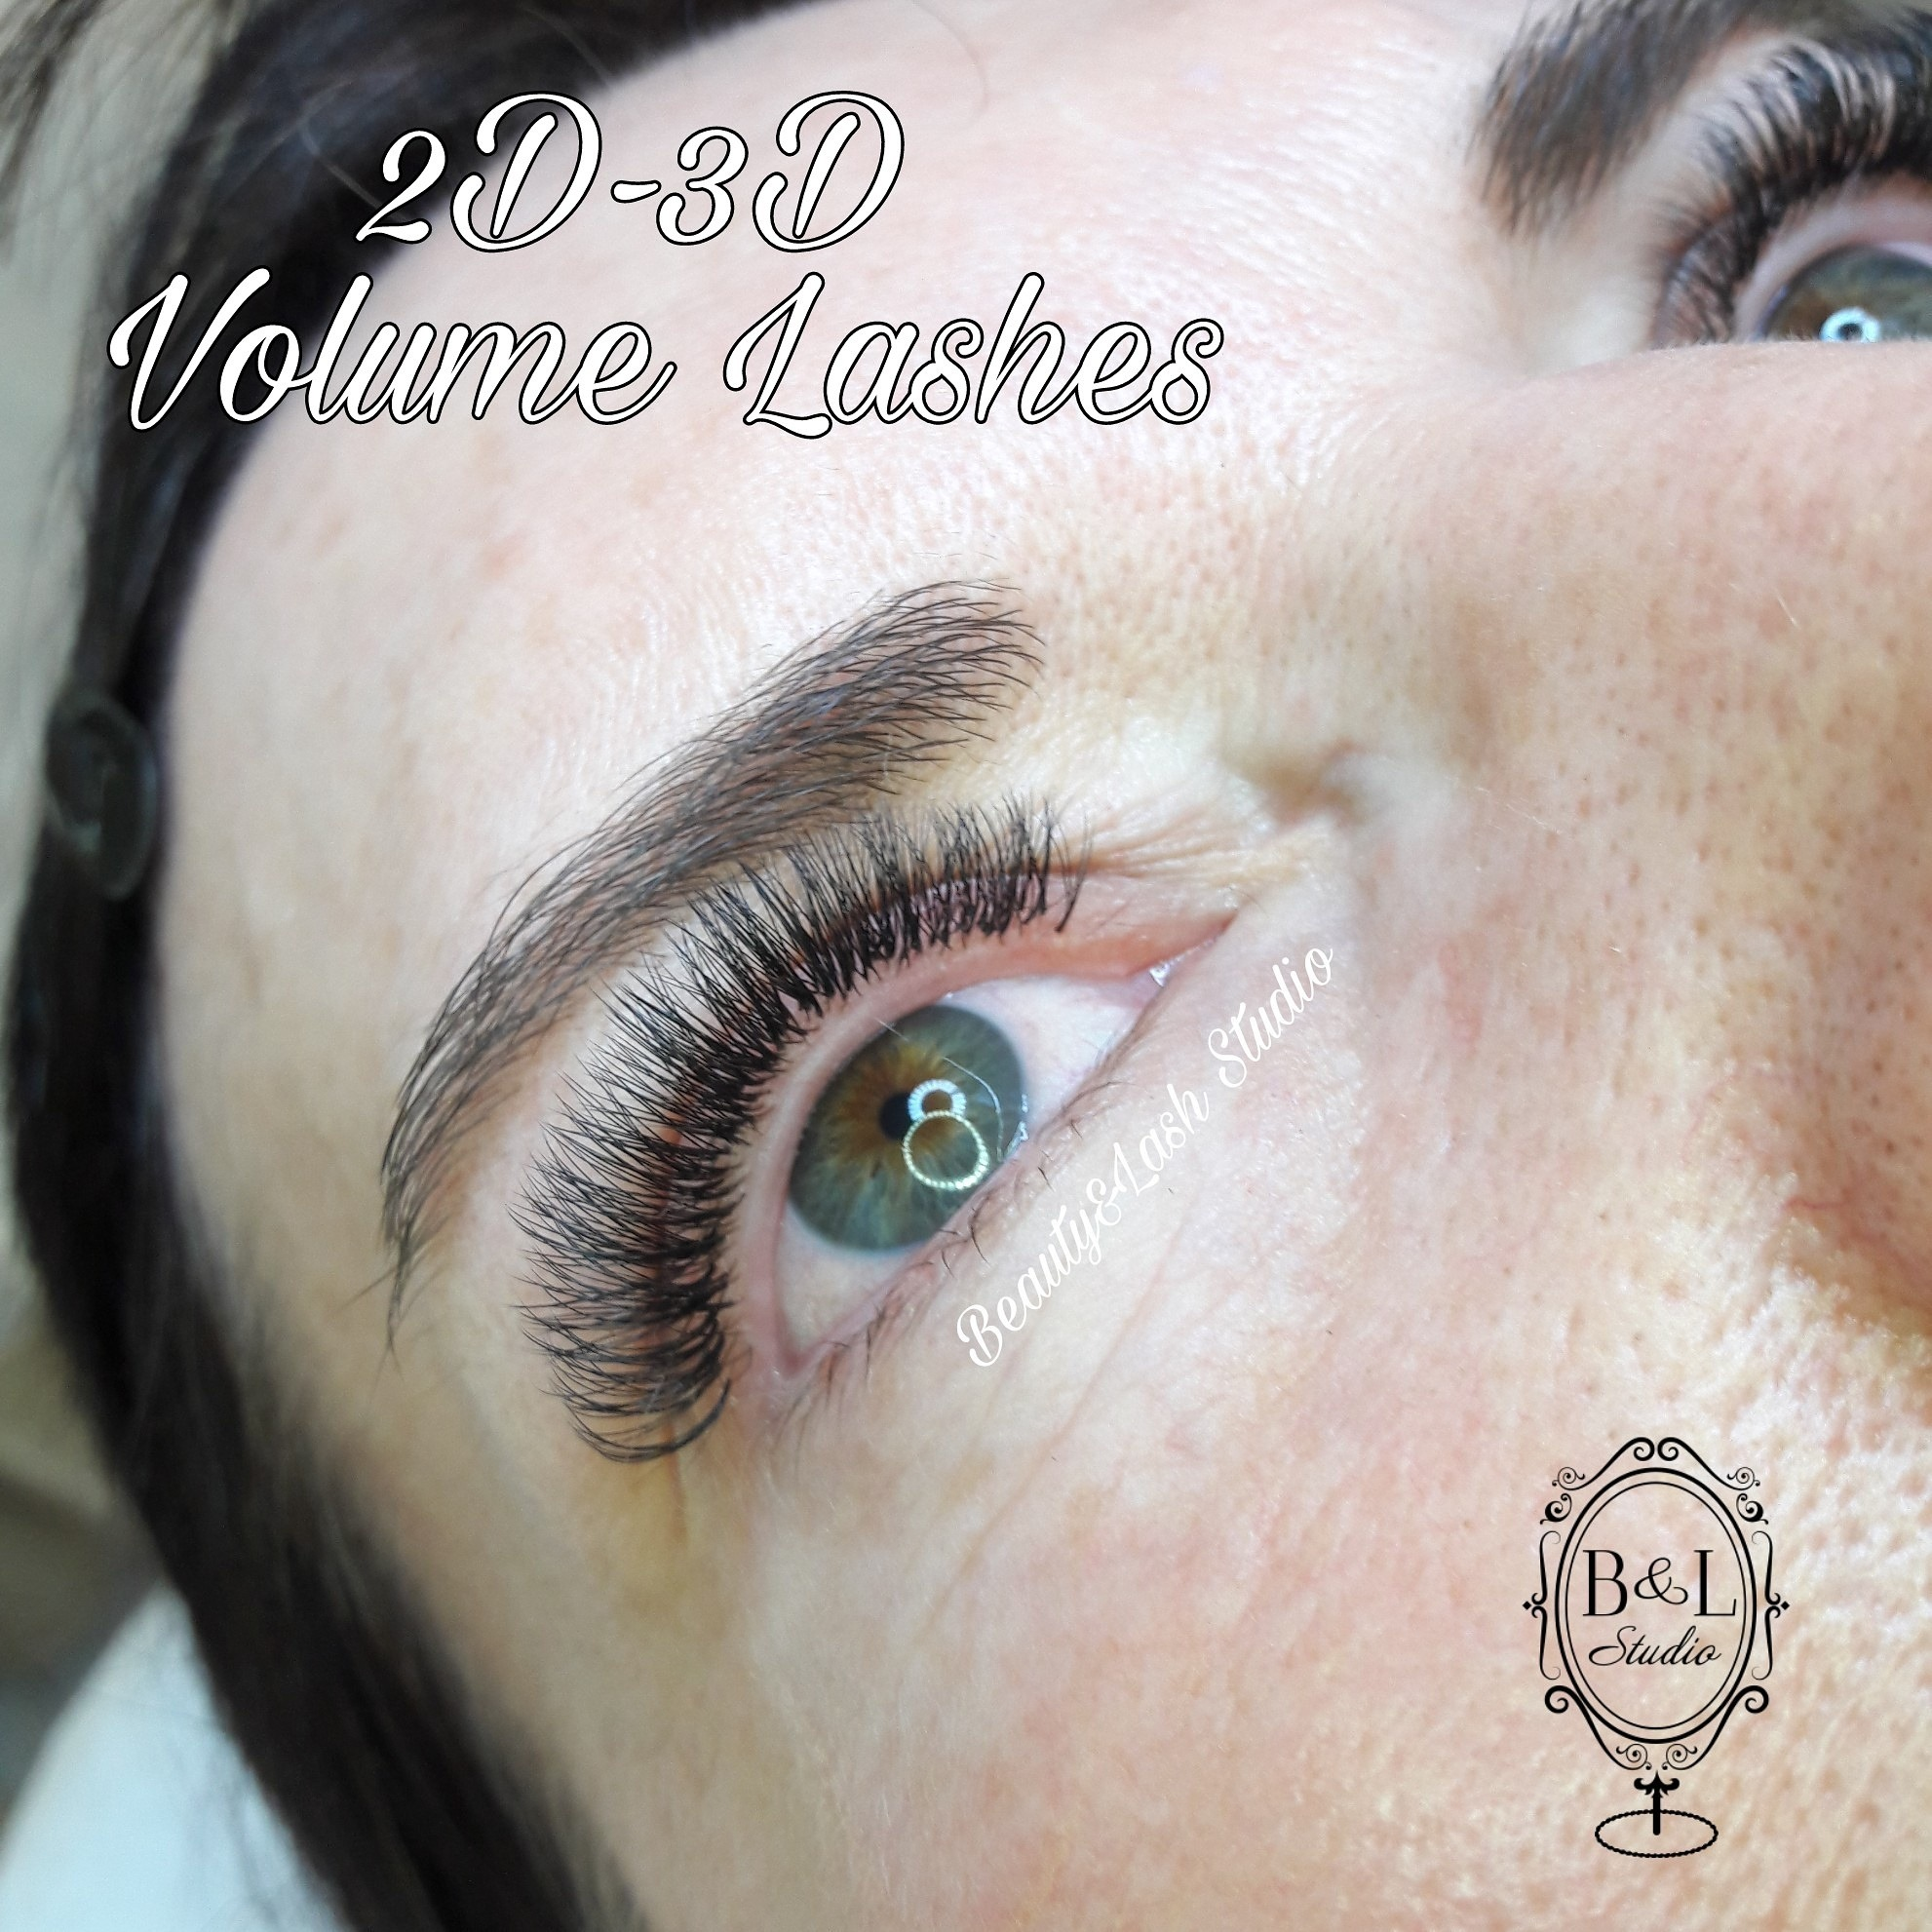 Volume Lashes 2D-3D